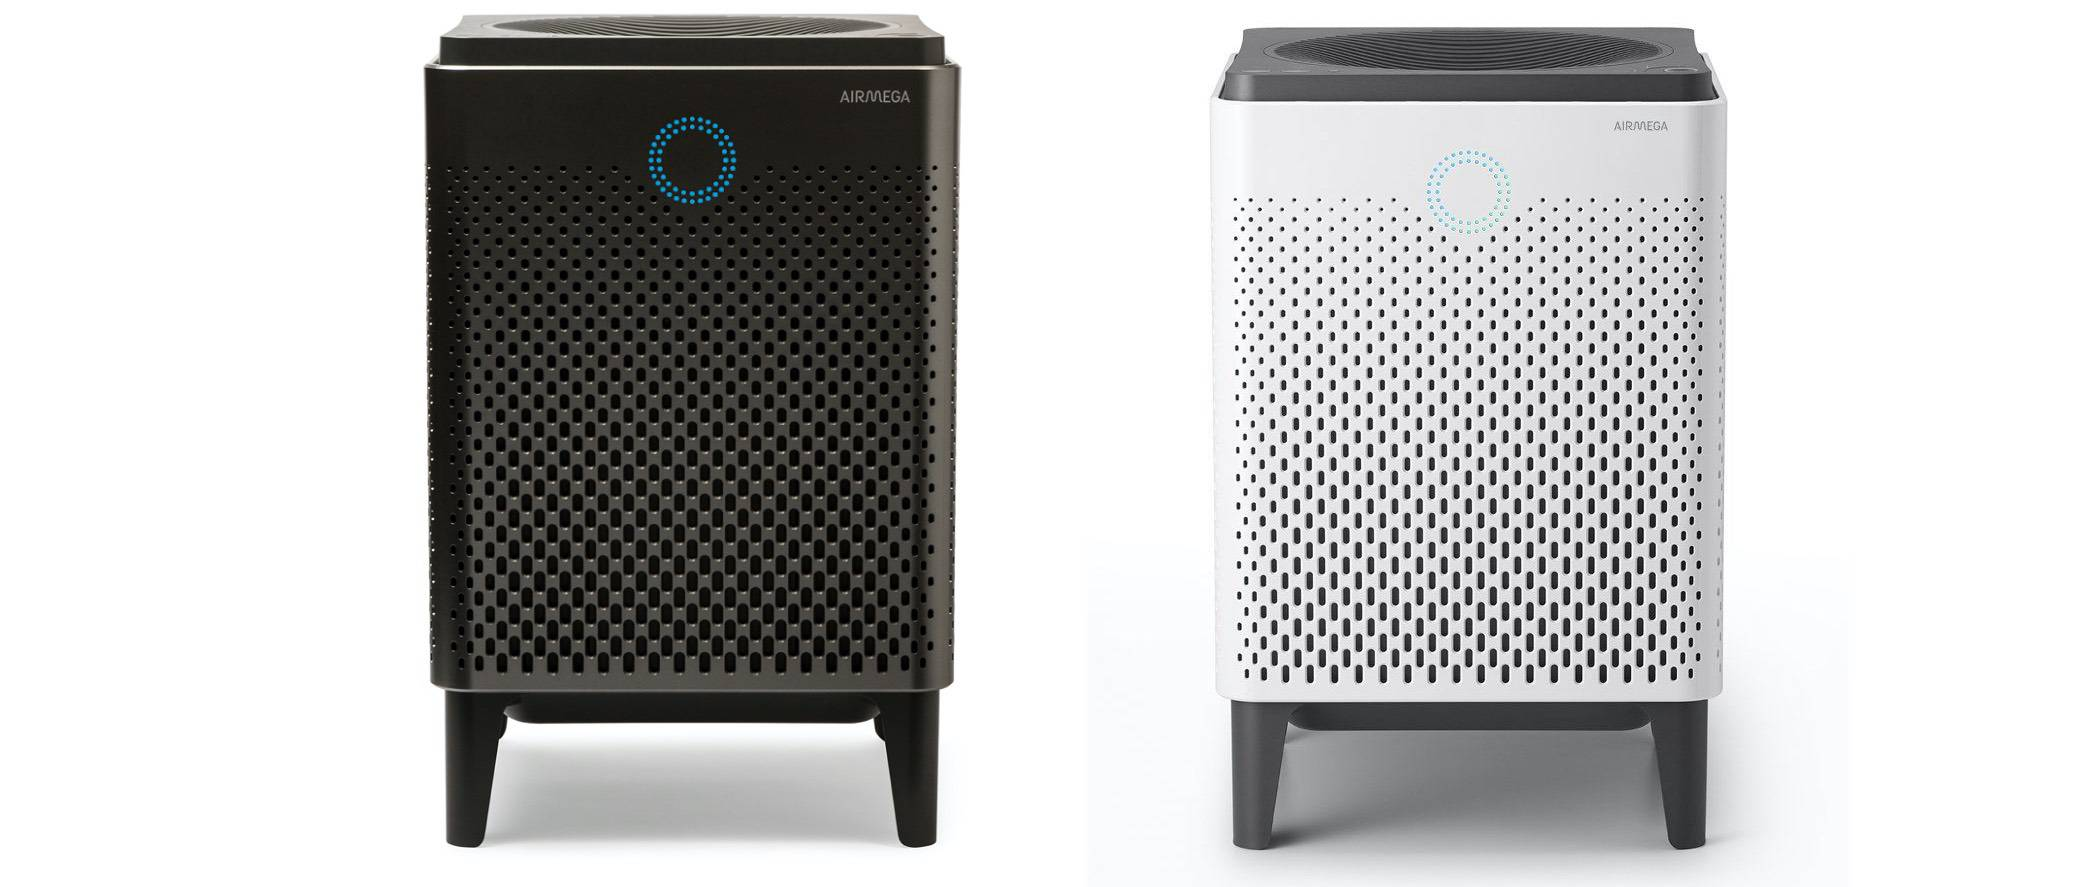 coway-airmega400-smart-purifier screenshot